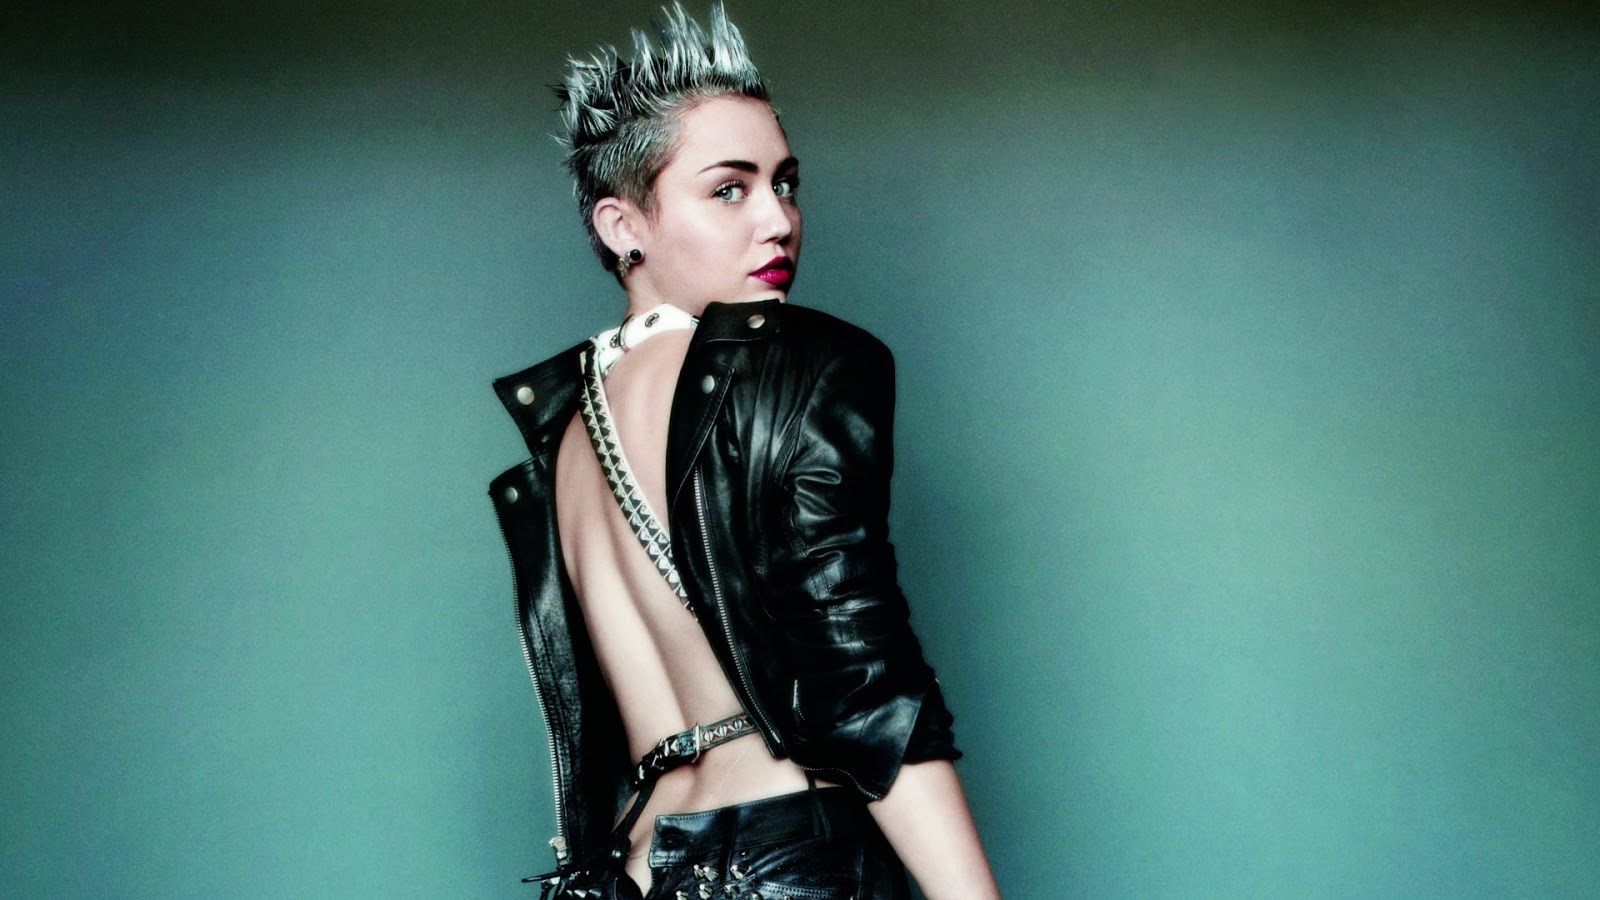 hd miley cyrus wallpapers - photo #30